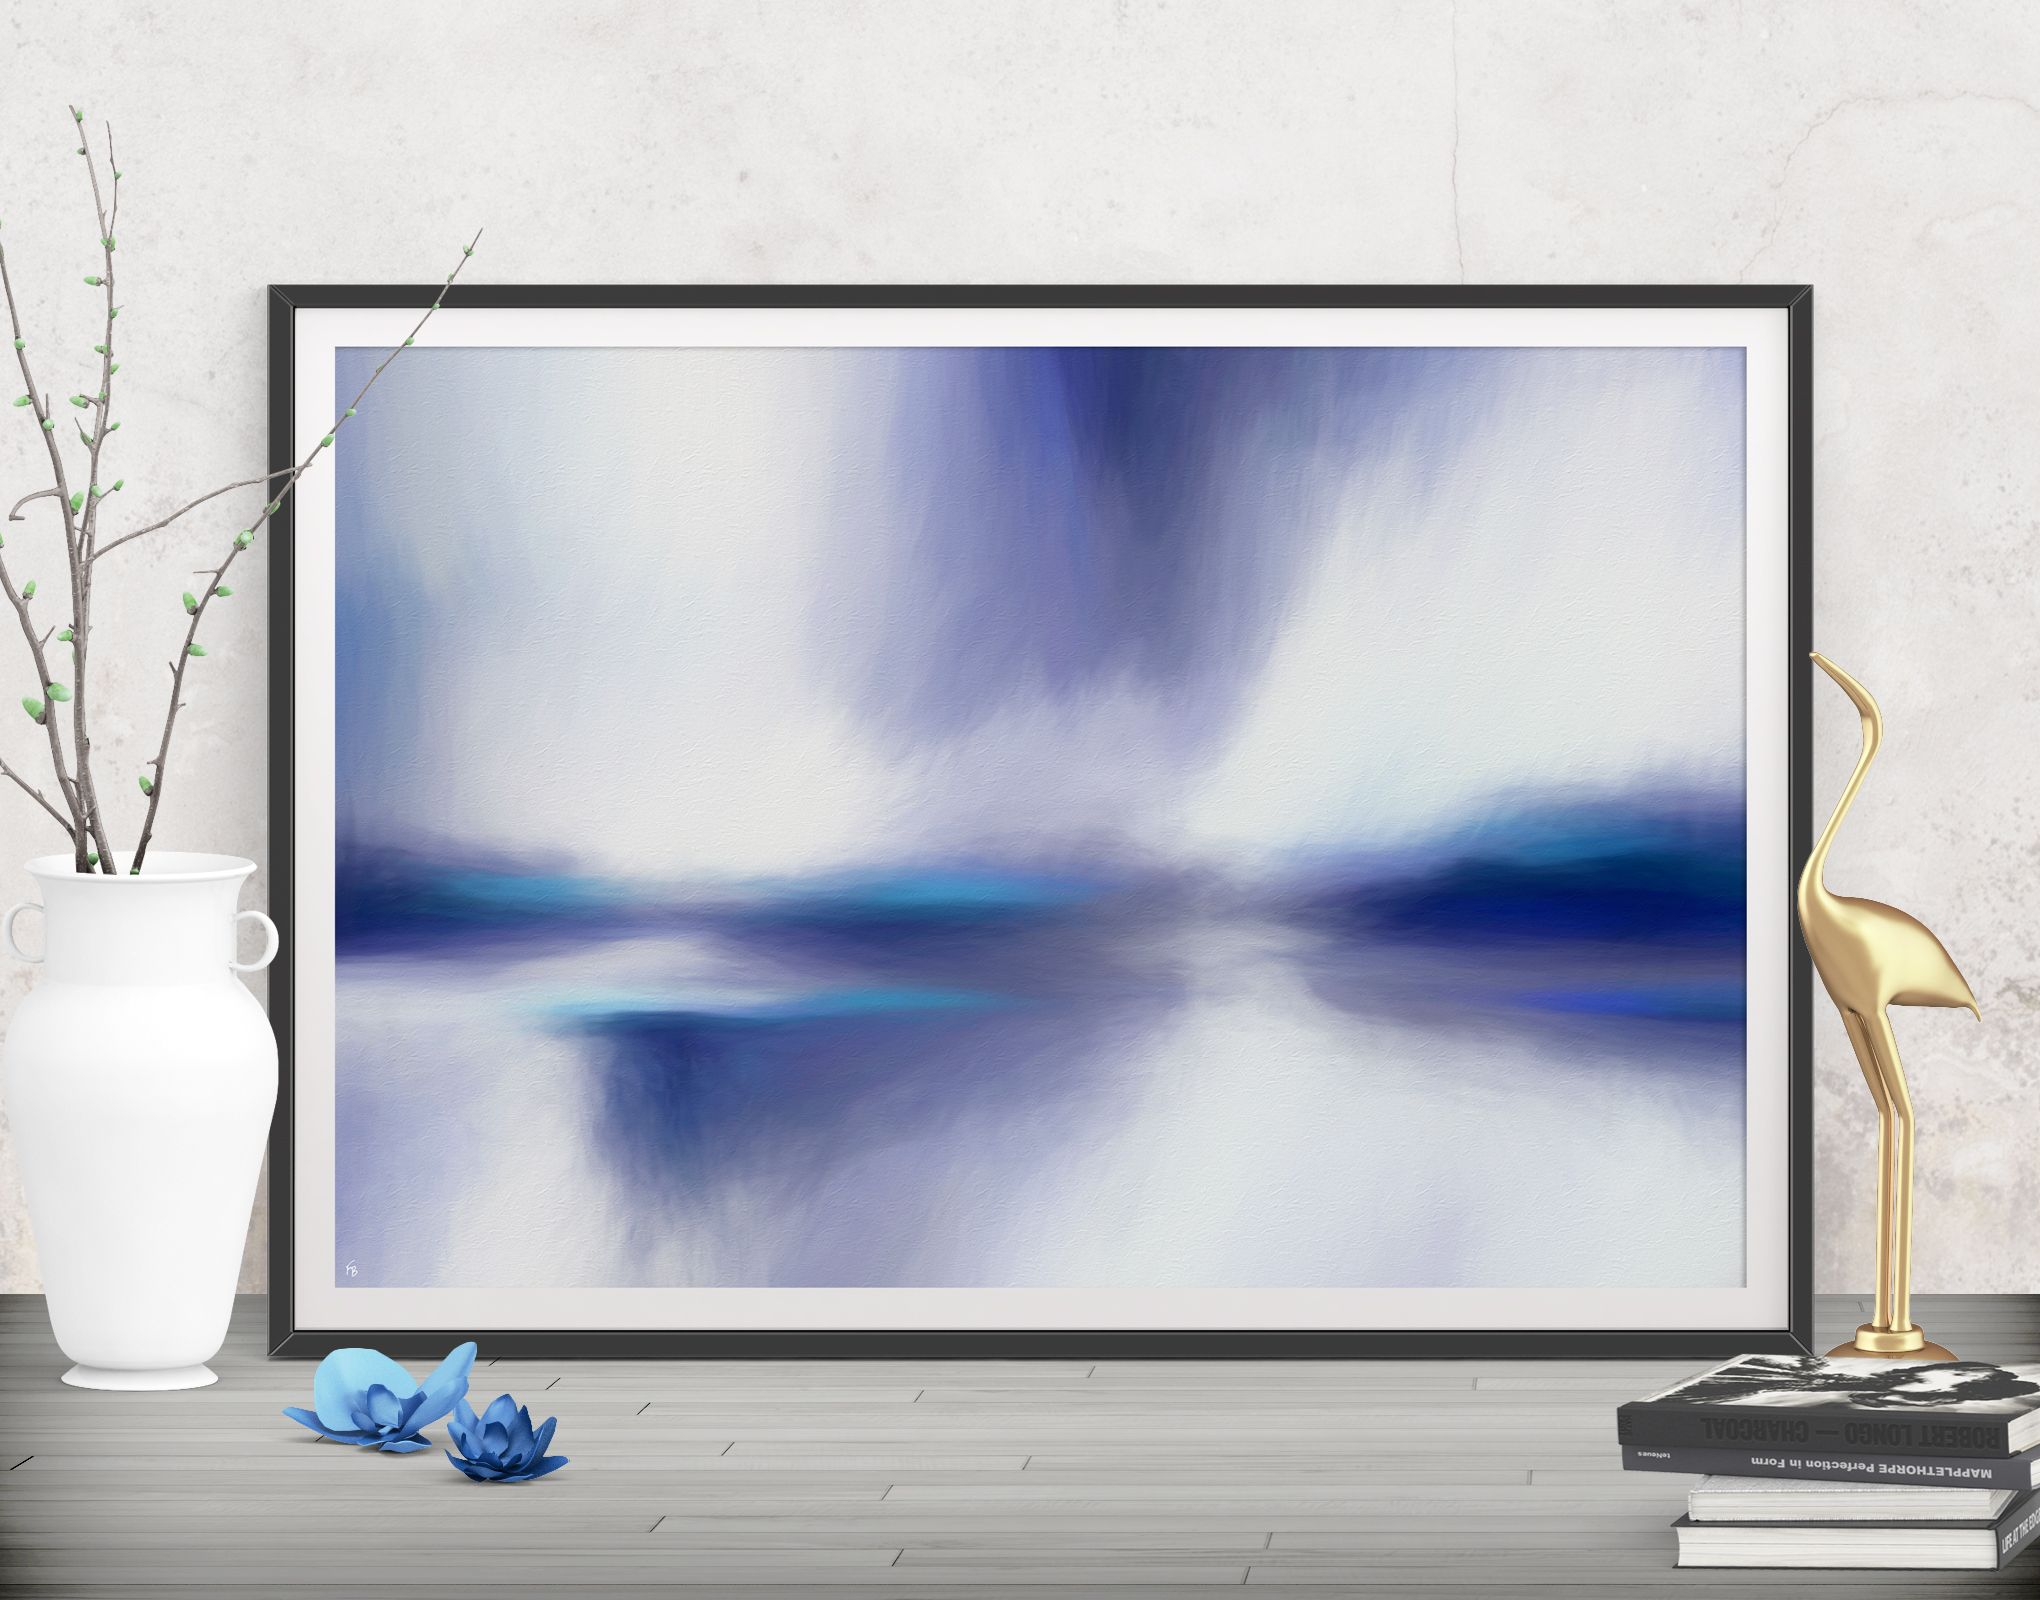 Casual soft mood with this fresh blue printable large decor poster